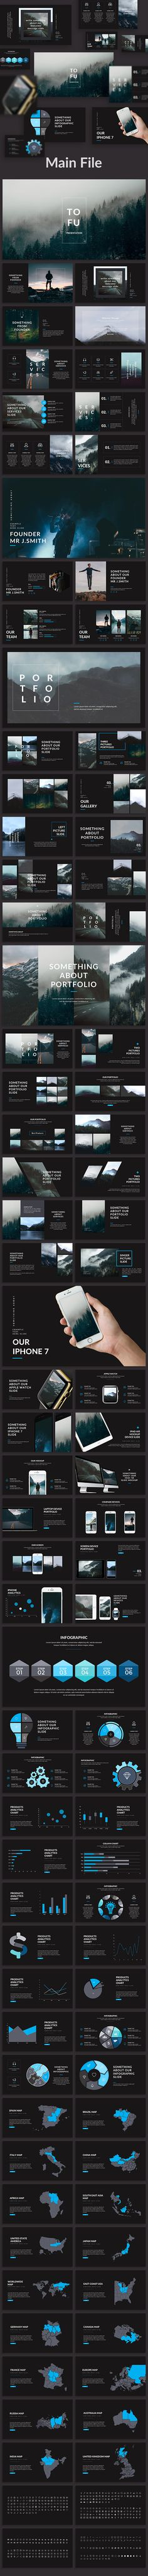 business powerpoint template powerpoint ppt social media best